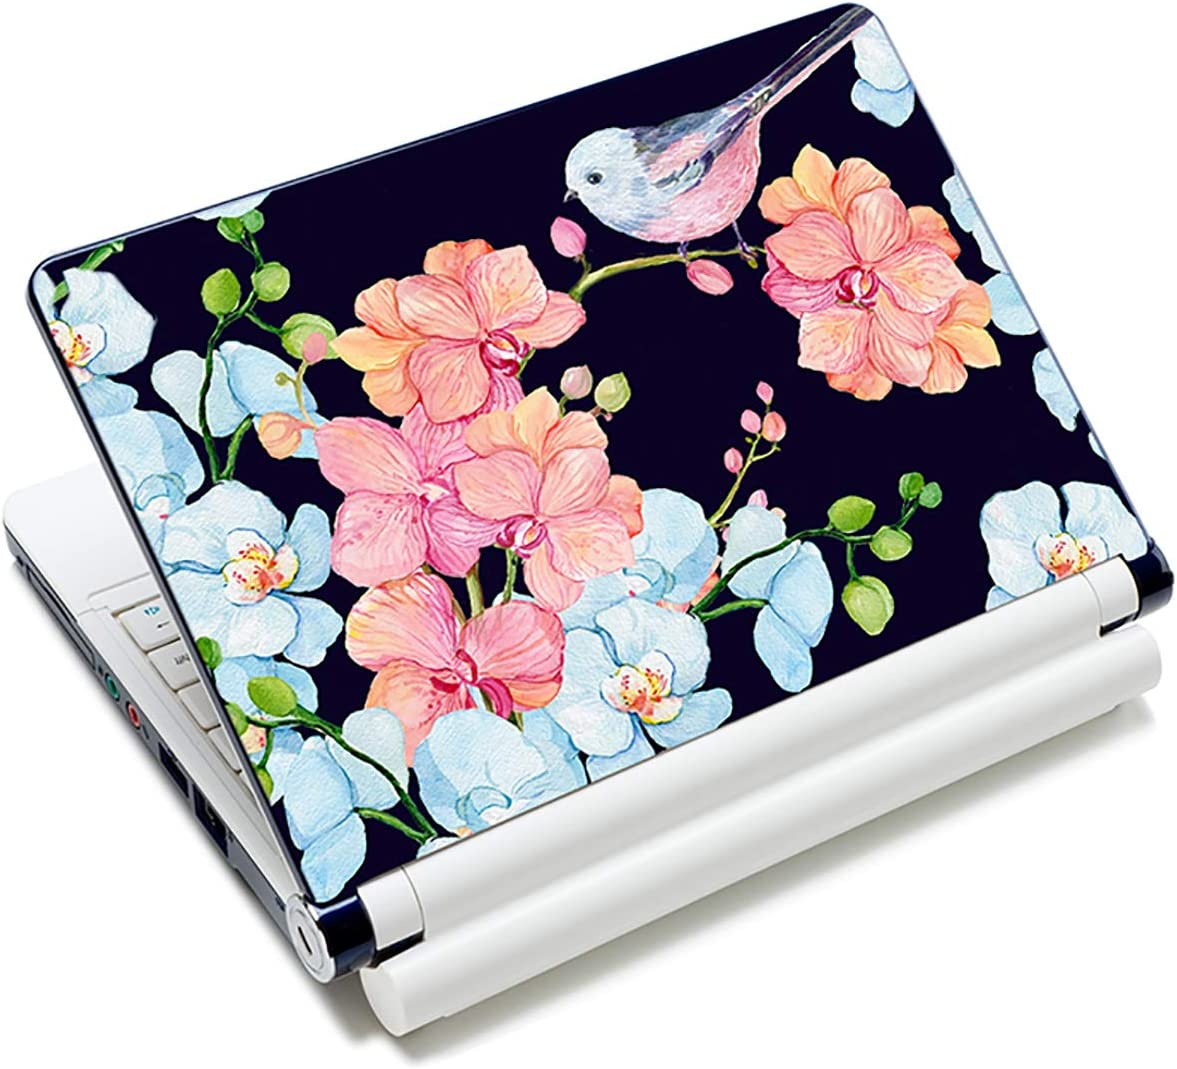 Bird & Nice Flower 12.1 13 13.3 14 15 15.4 15.6 Inches Personalized Laptop Skin Sticker Decal Universal Netbook Skin Sticker Reusable Notebook PC Art Decal Protector Cover Case by AORTDES